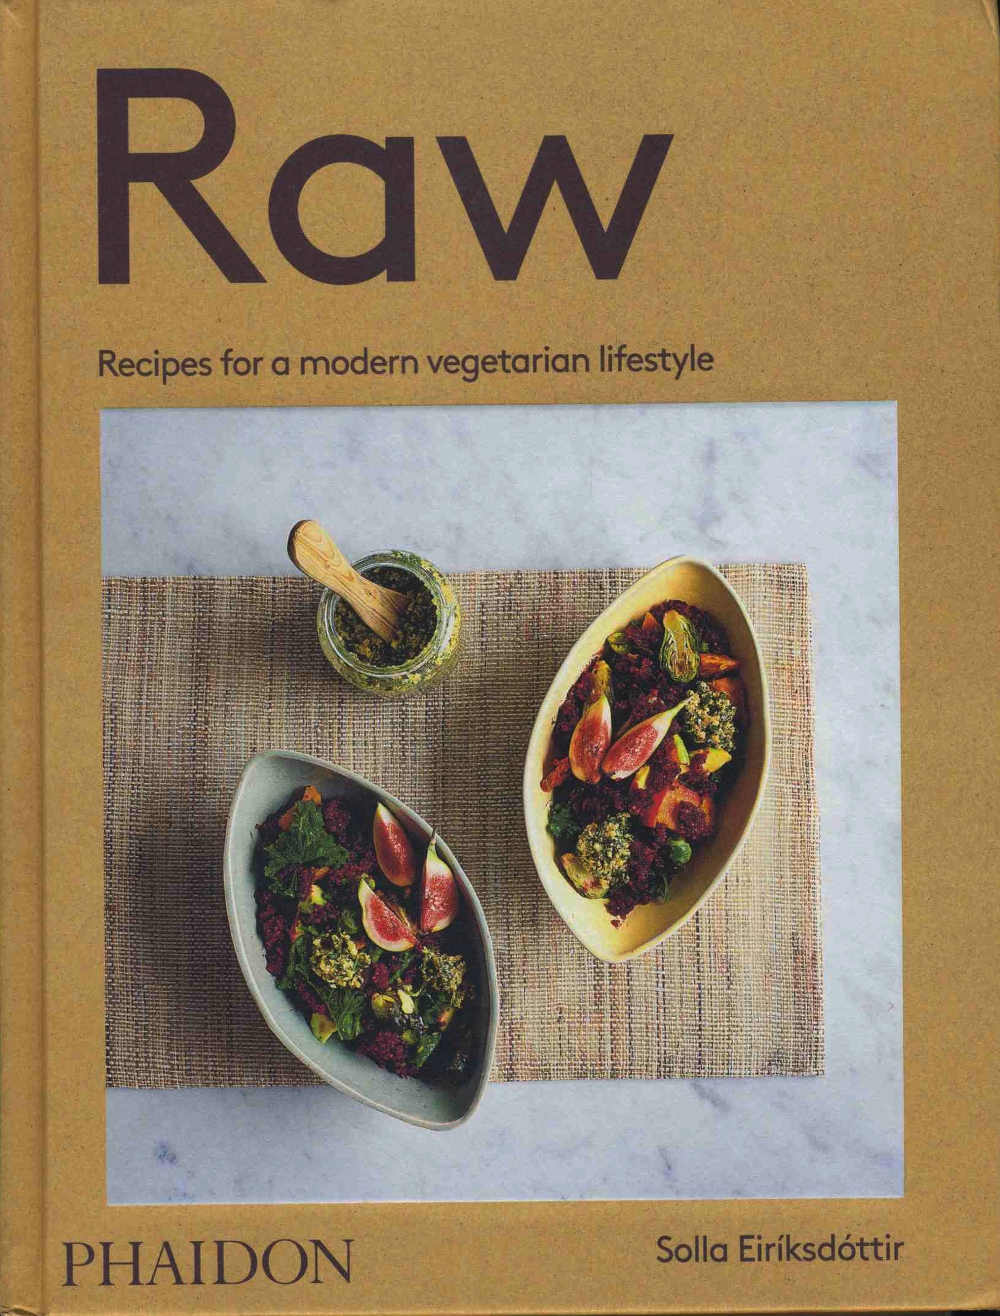 Raw: Recipes For a Modern Vegetarian Lifestyle by Solla Eiríksdóttir Published by Phaidon; hardback, 240 pp, 100 specially commissioned photographs; £24.95/€34.95.